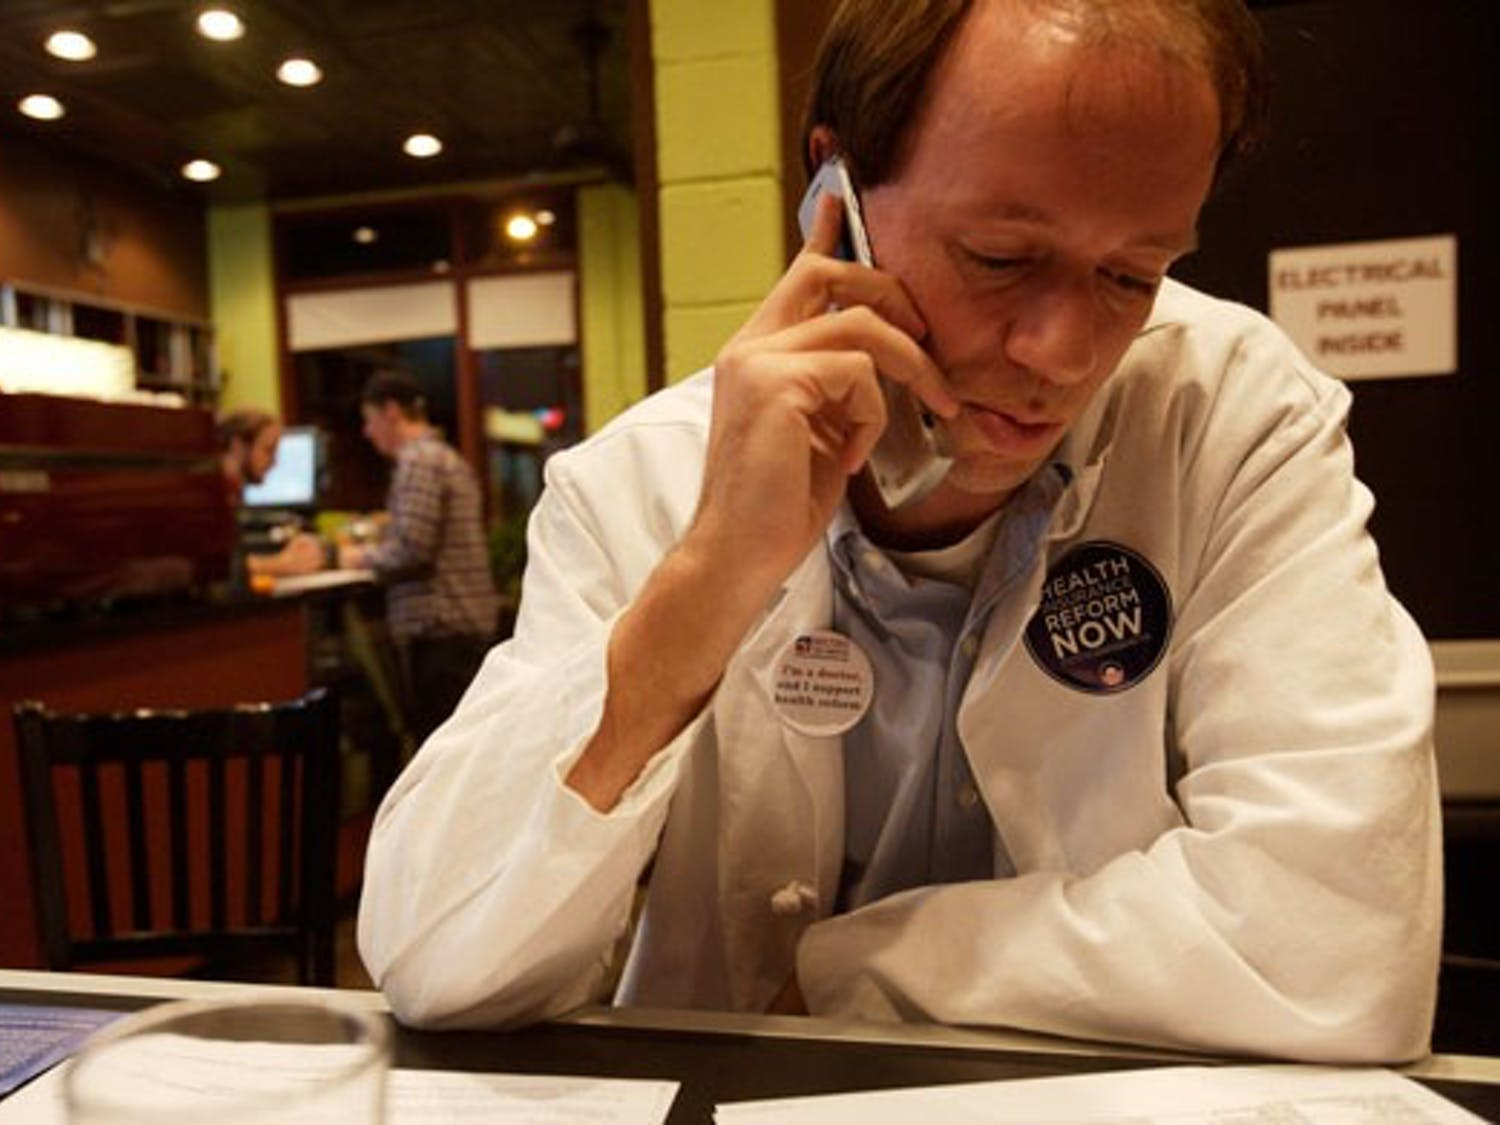 Jimmy Wallace,joined otherhealth care professionals for a calling campaign for Obama's health care reform.DTH/Katherine Vance